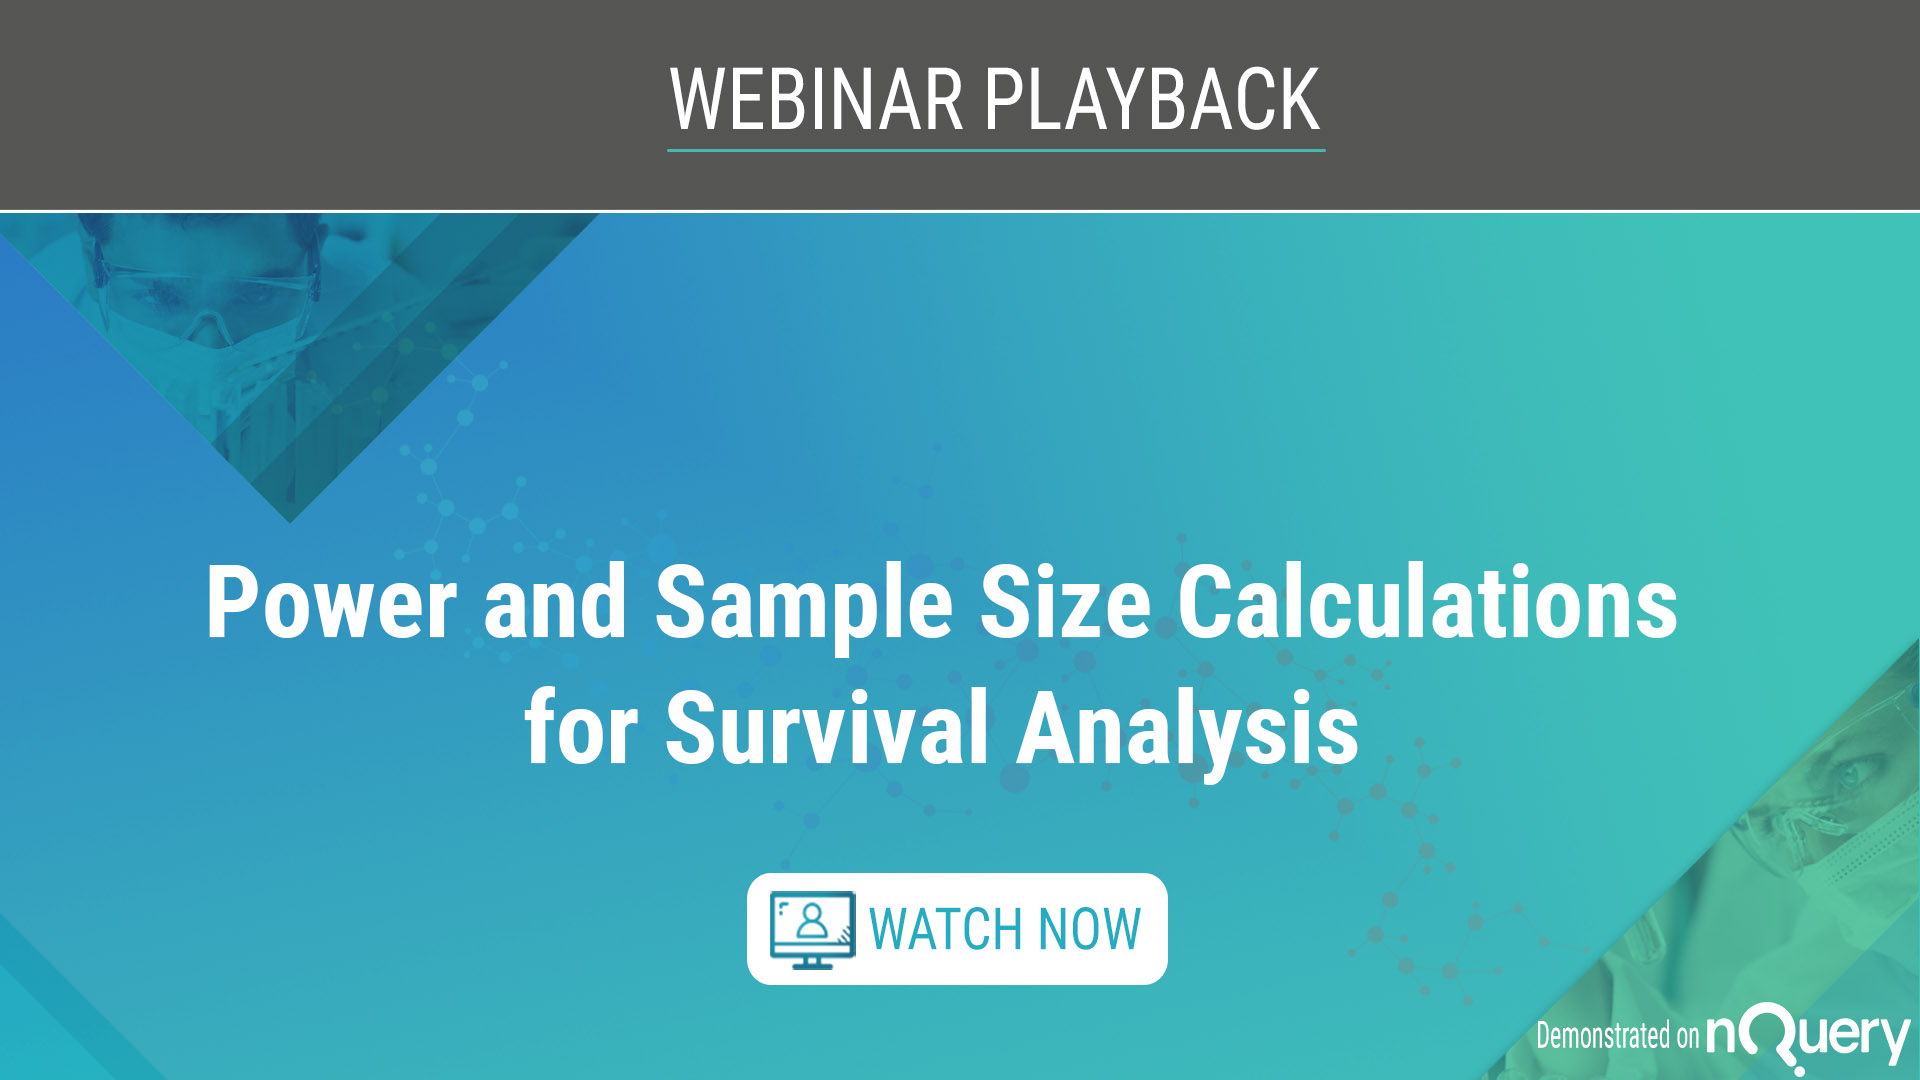 power-and-sample-size-calculations-for-survival-analysis-on-demand-1920-1080